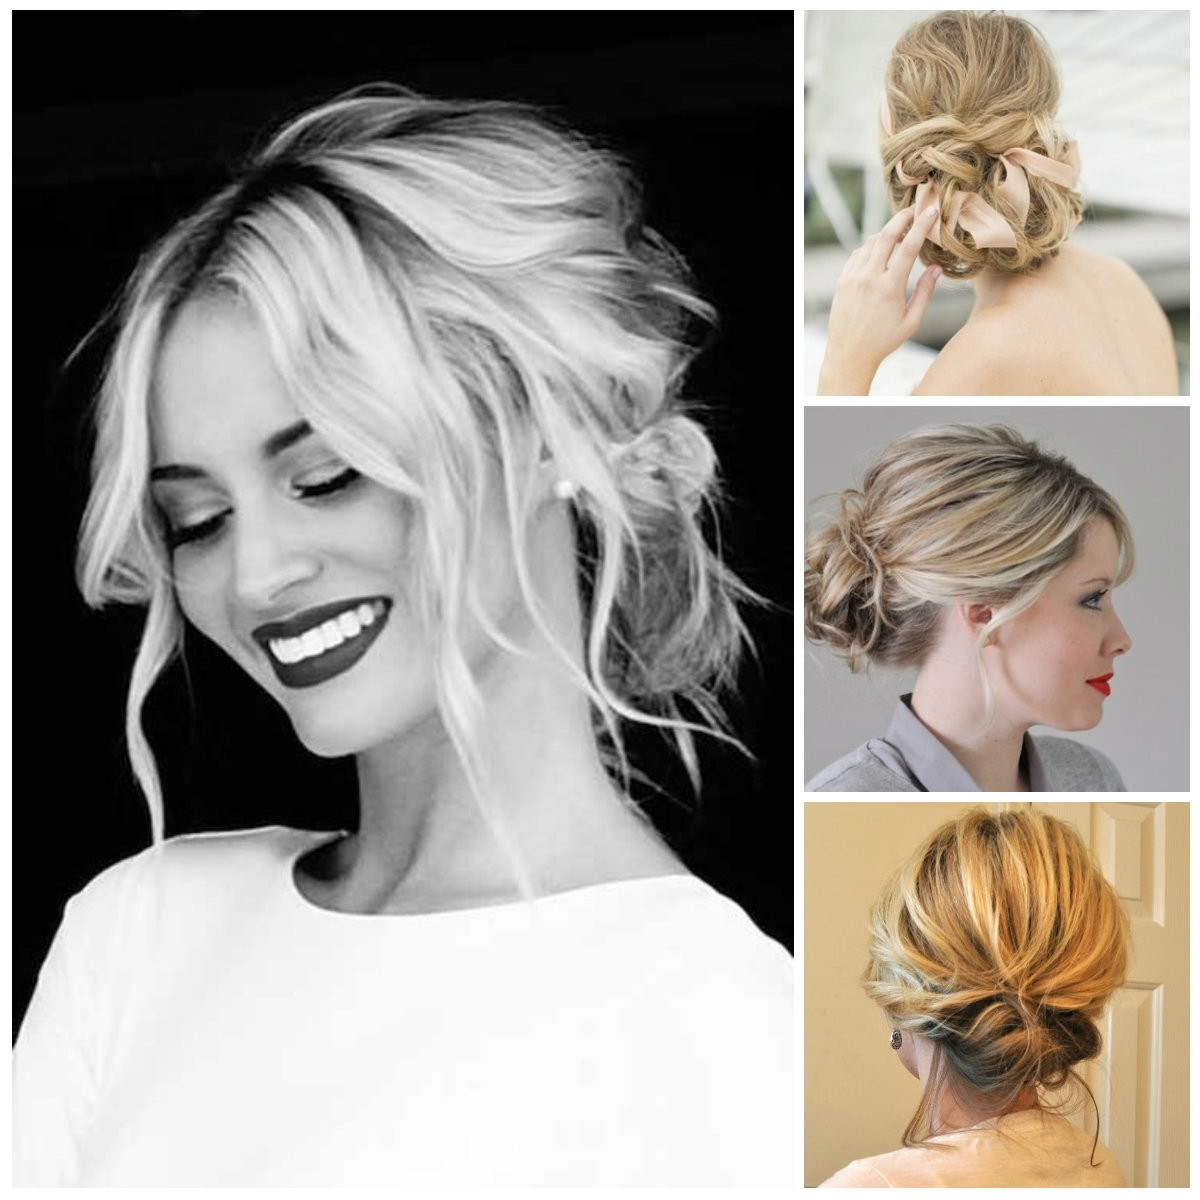 Newest Bridal Updo Hairstyles For Medium Length Hair Intended For Updo Hairstyles For Medium Length – Hairstyle For Women & Man (View 11 of 15)